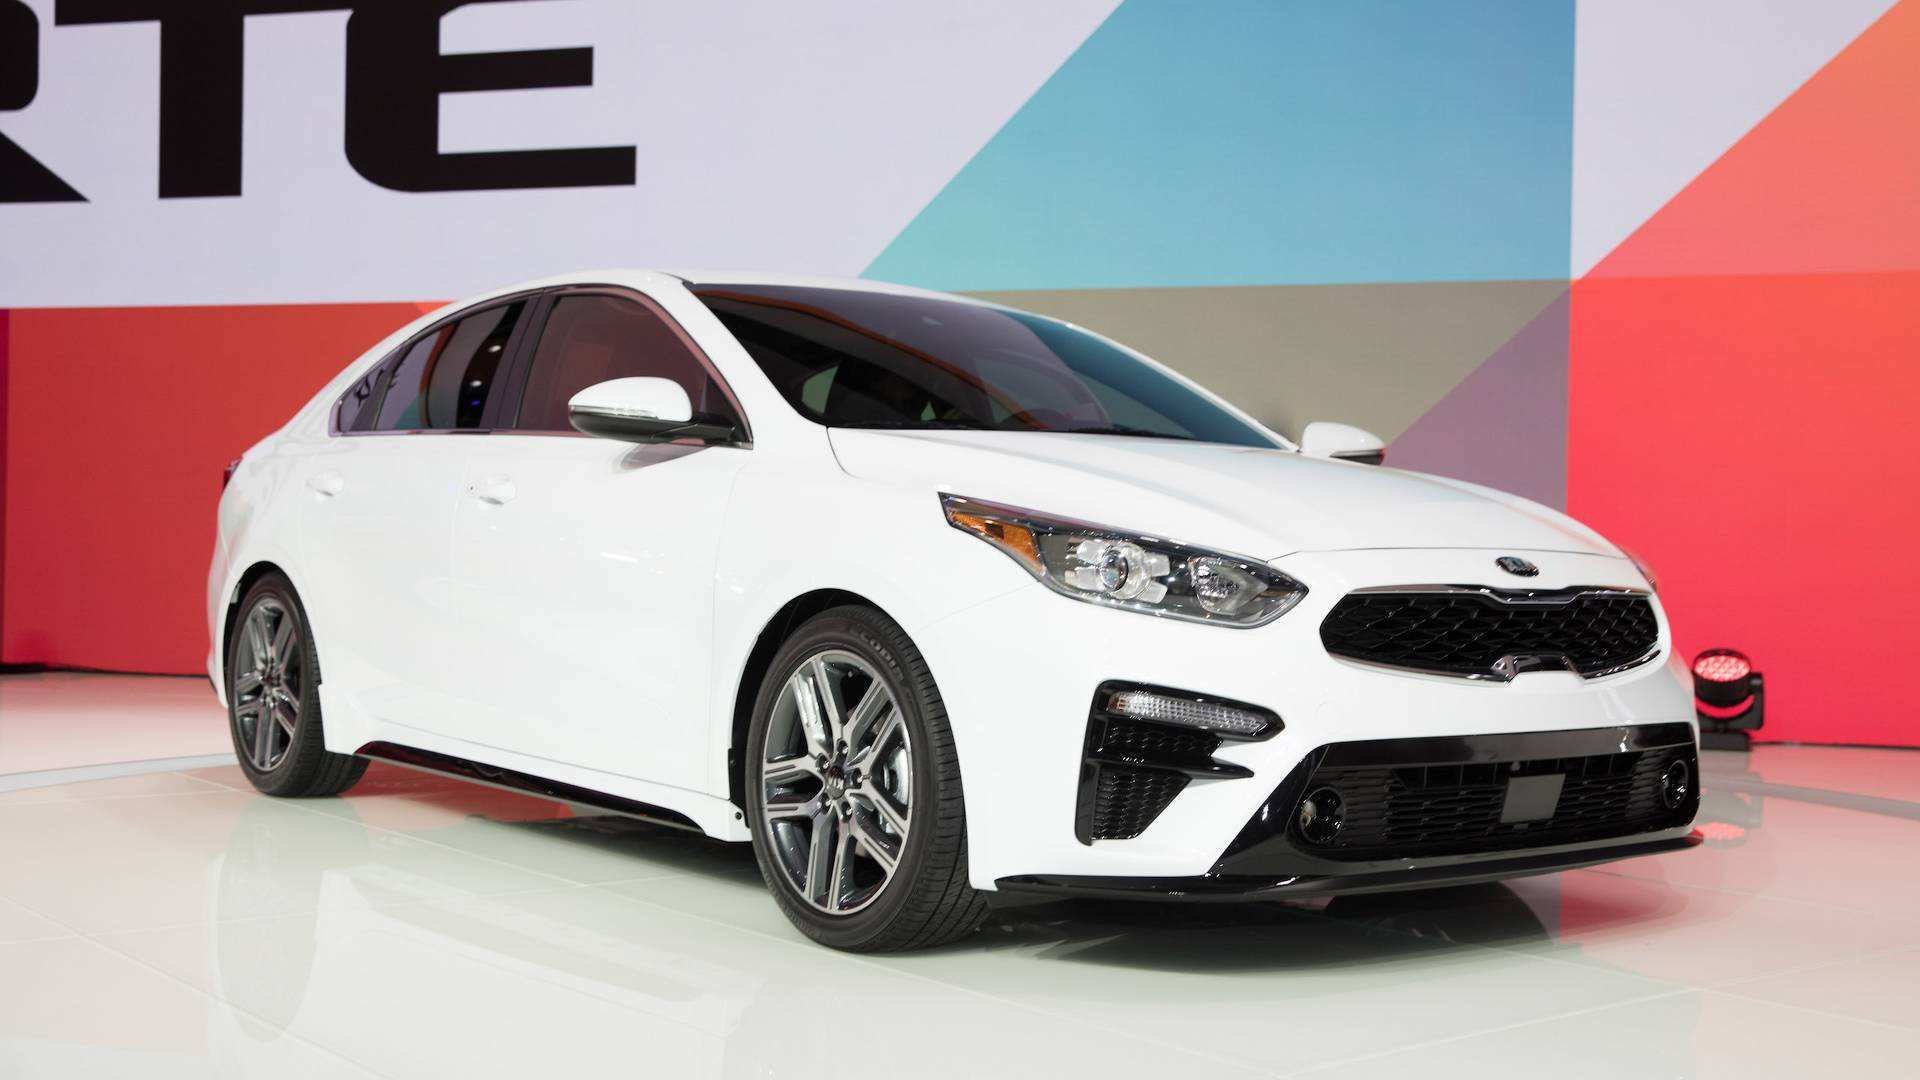 17 New Kia Cerato 2020 Black Performance and New Engine for Kia Cerato 2020 Black